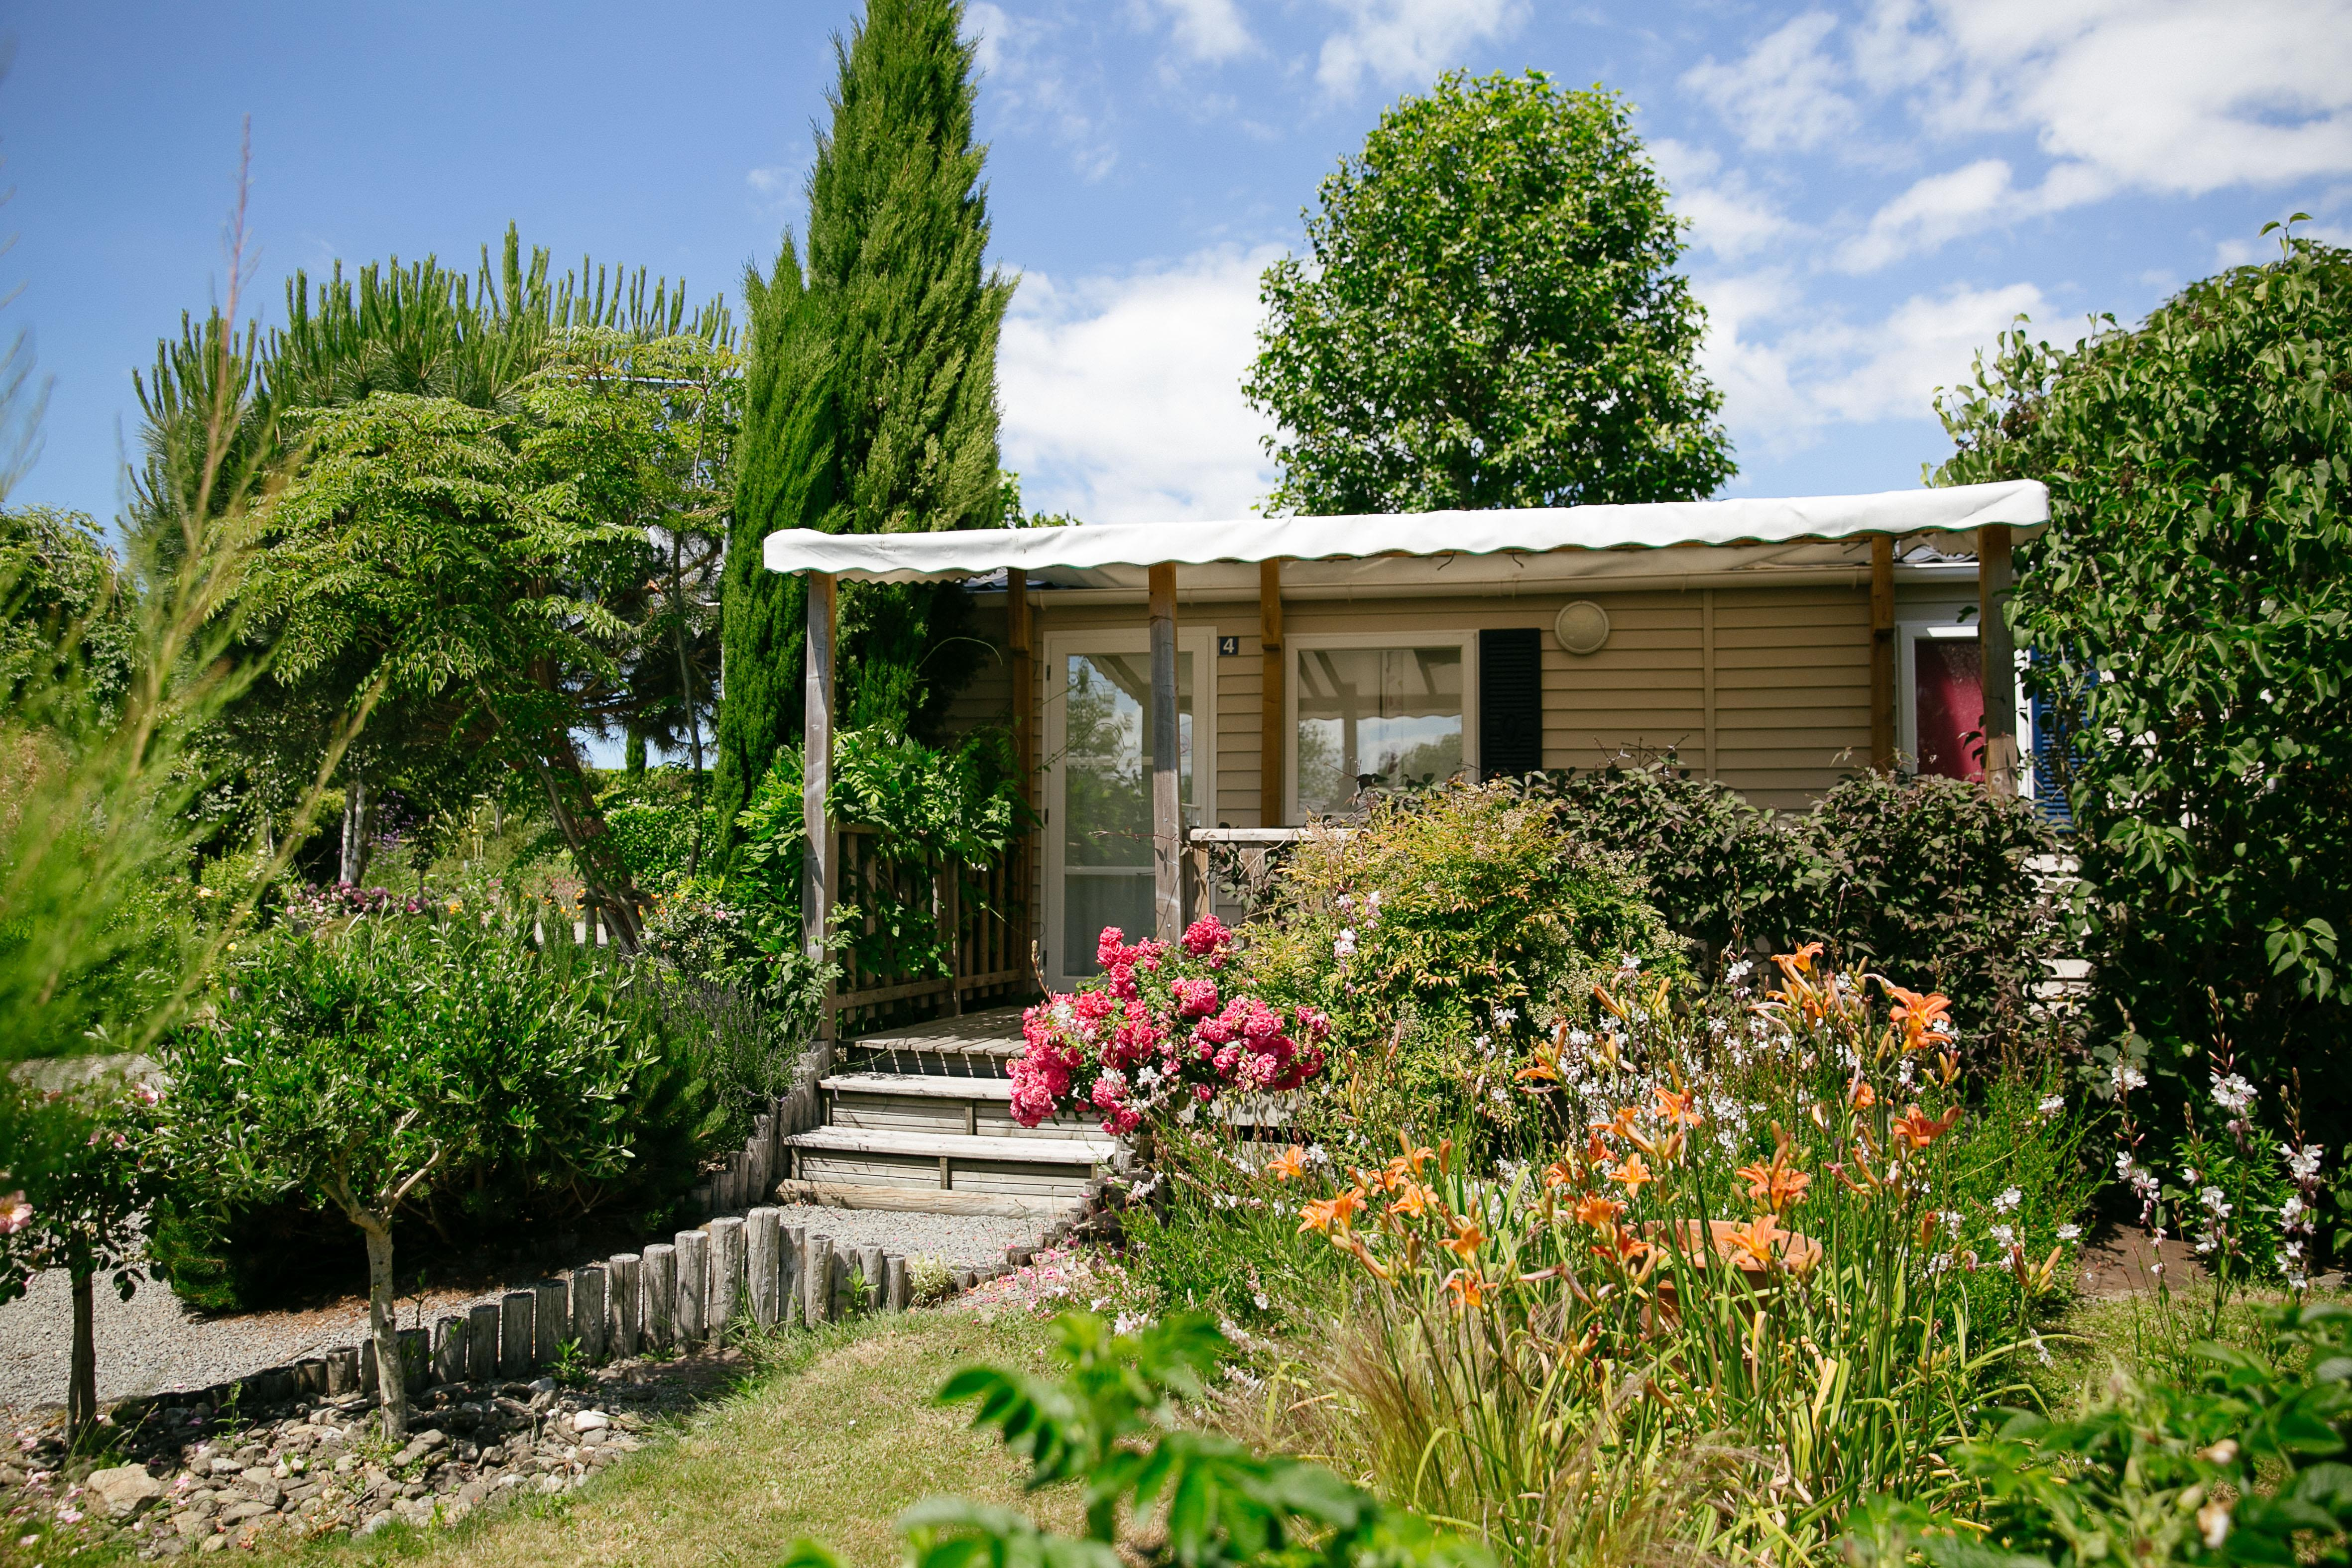 Location - Mobil Home 2 Chambres (32M²) - Tv Terrasse - Camping Saint-Michel